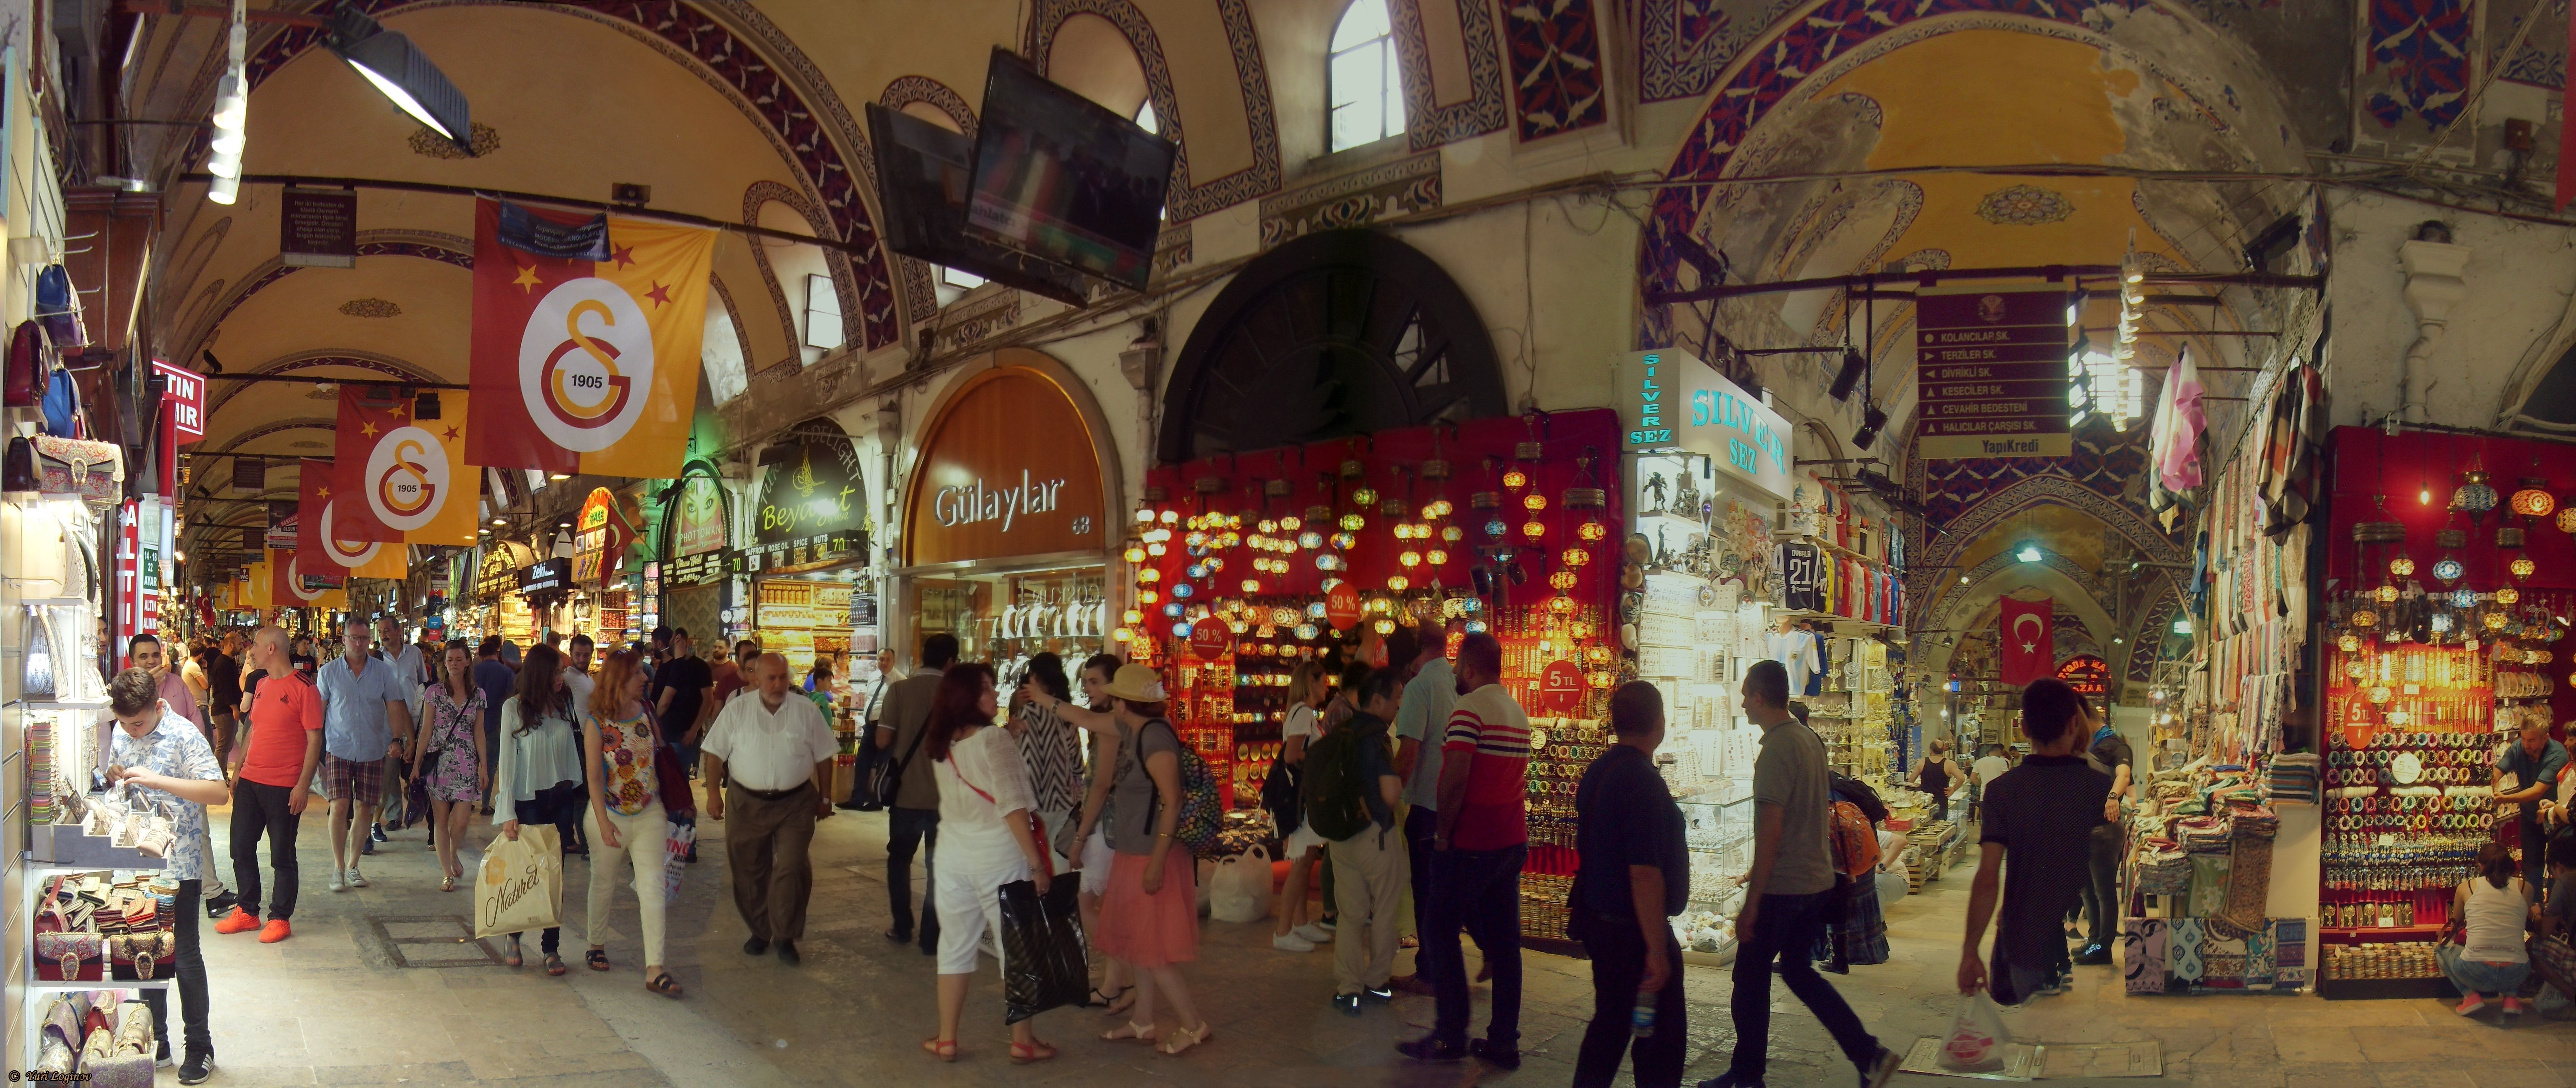 Free stock photo of turkey, Istanbul, TÜRKİYE, grand bazaar